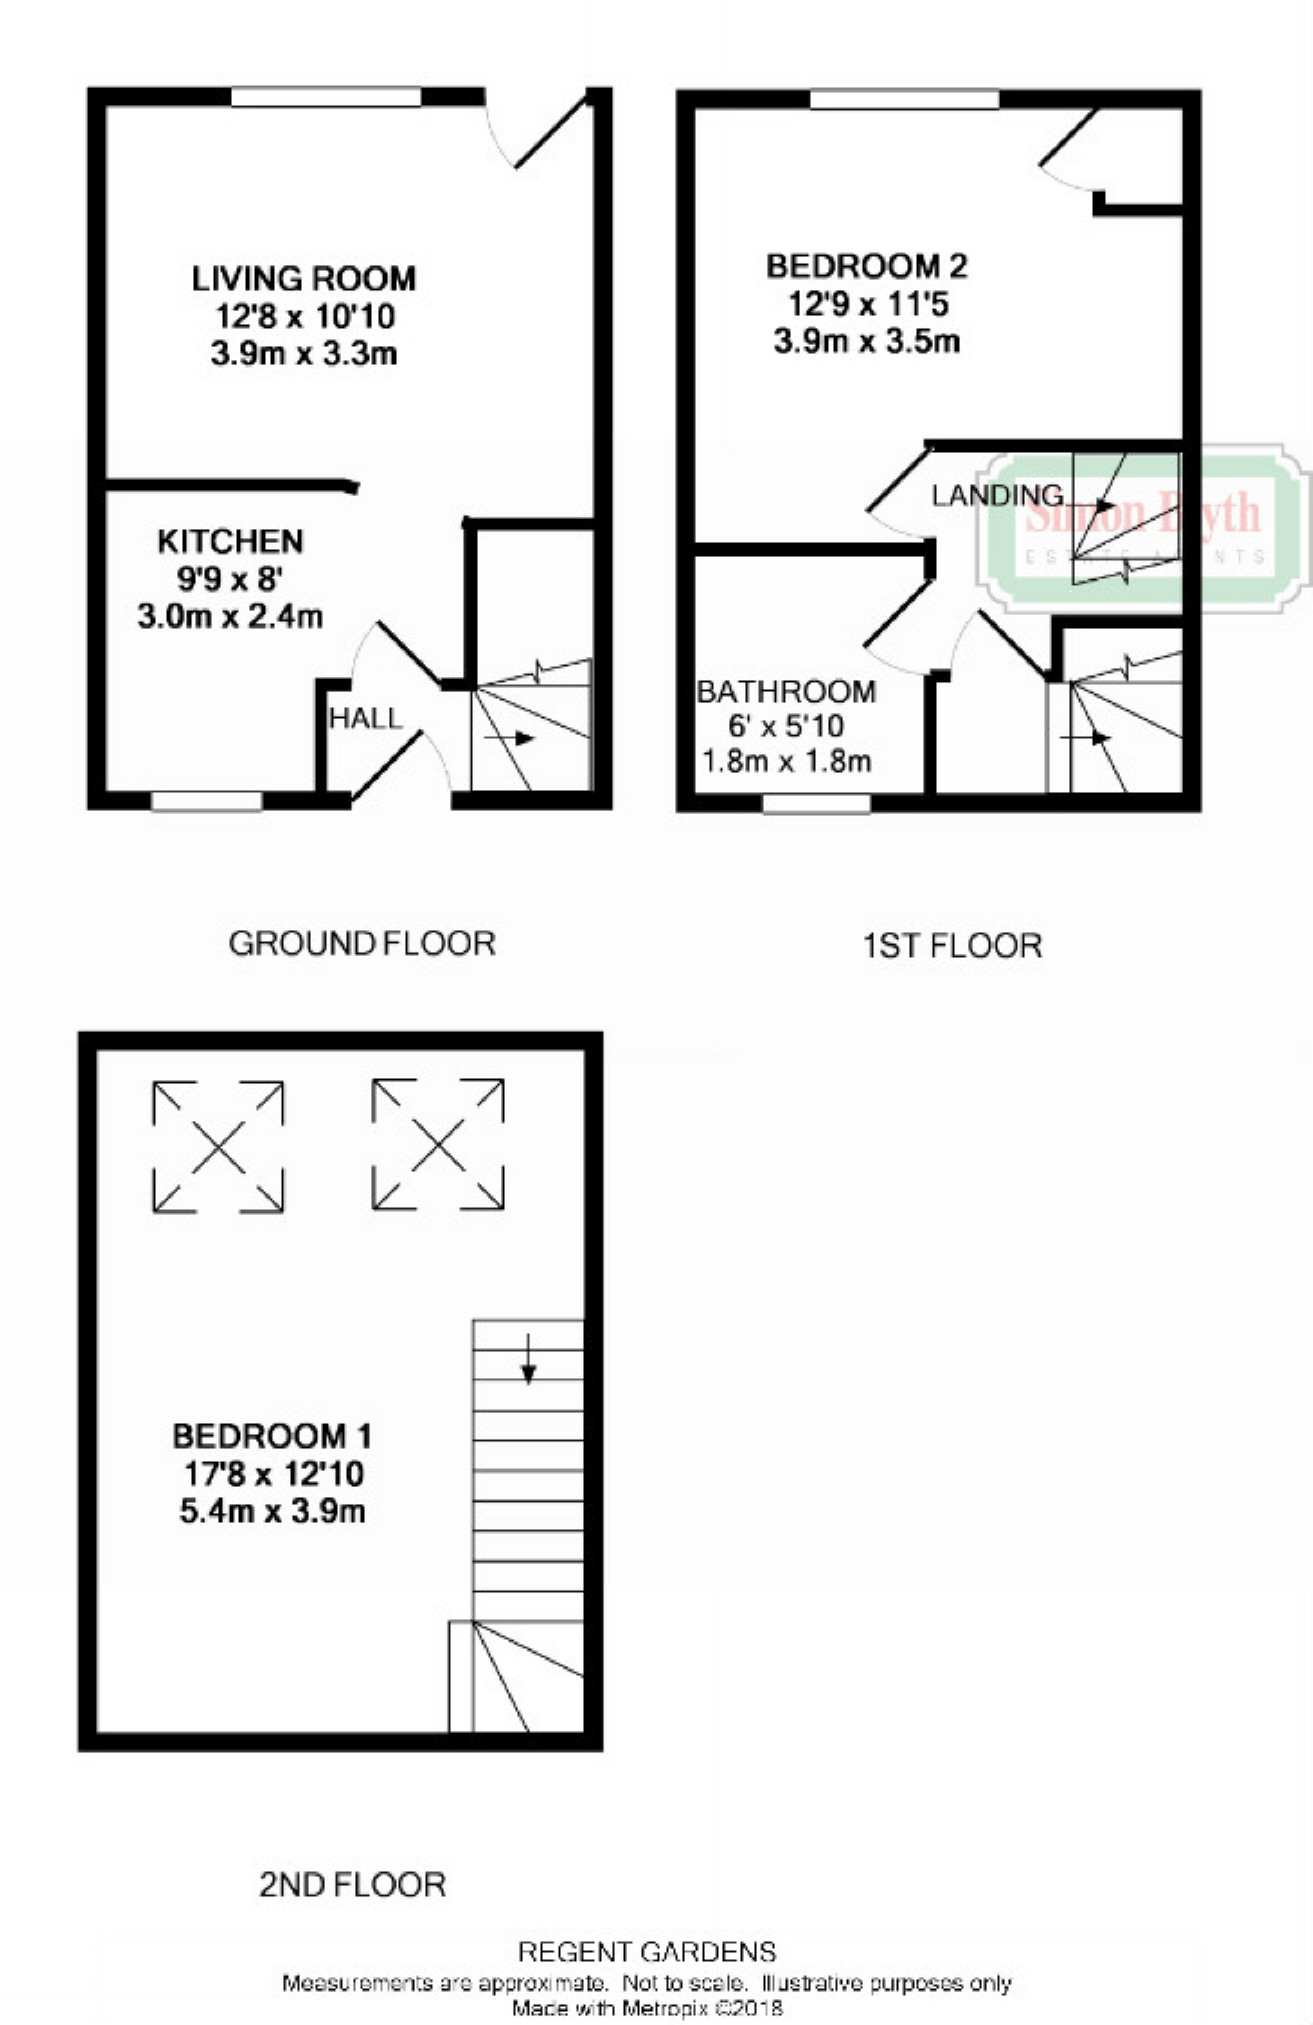 2 bedroom property for sale in regent gardens penistone sheffield view floor plan ccuart Gallery